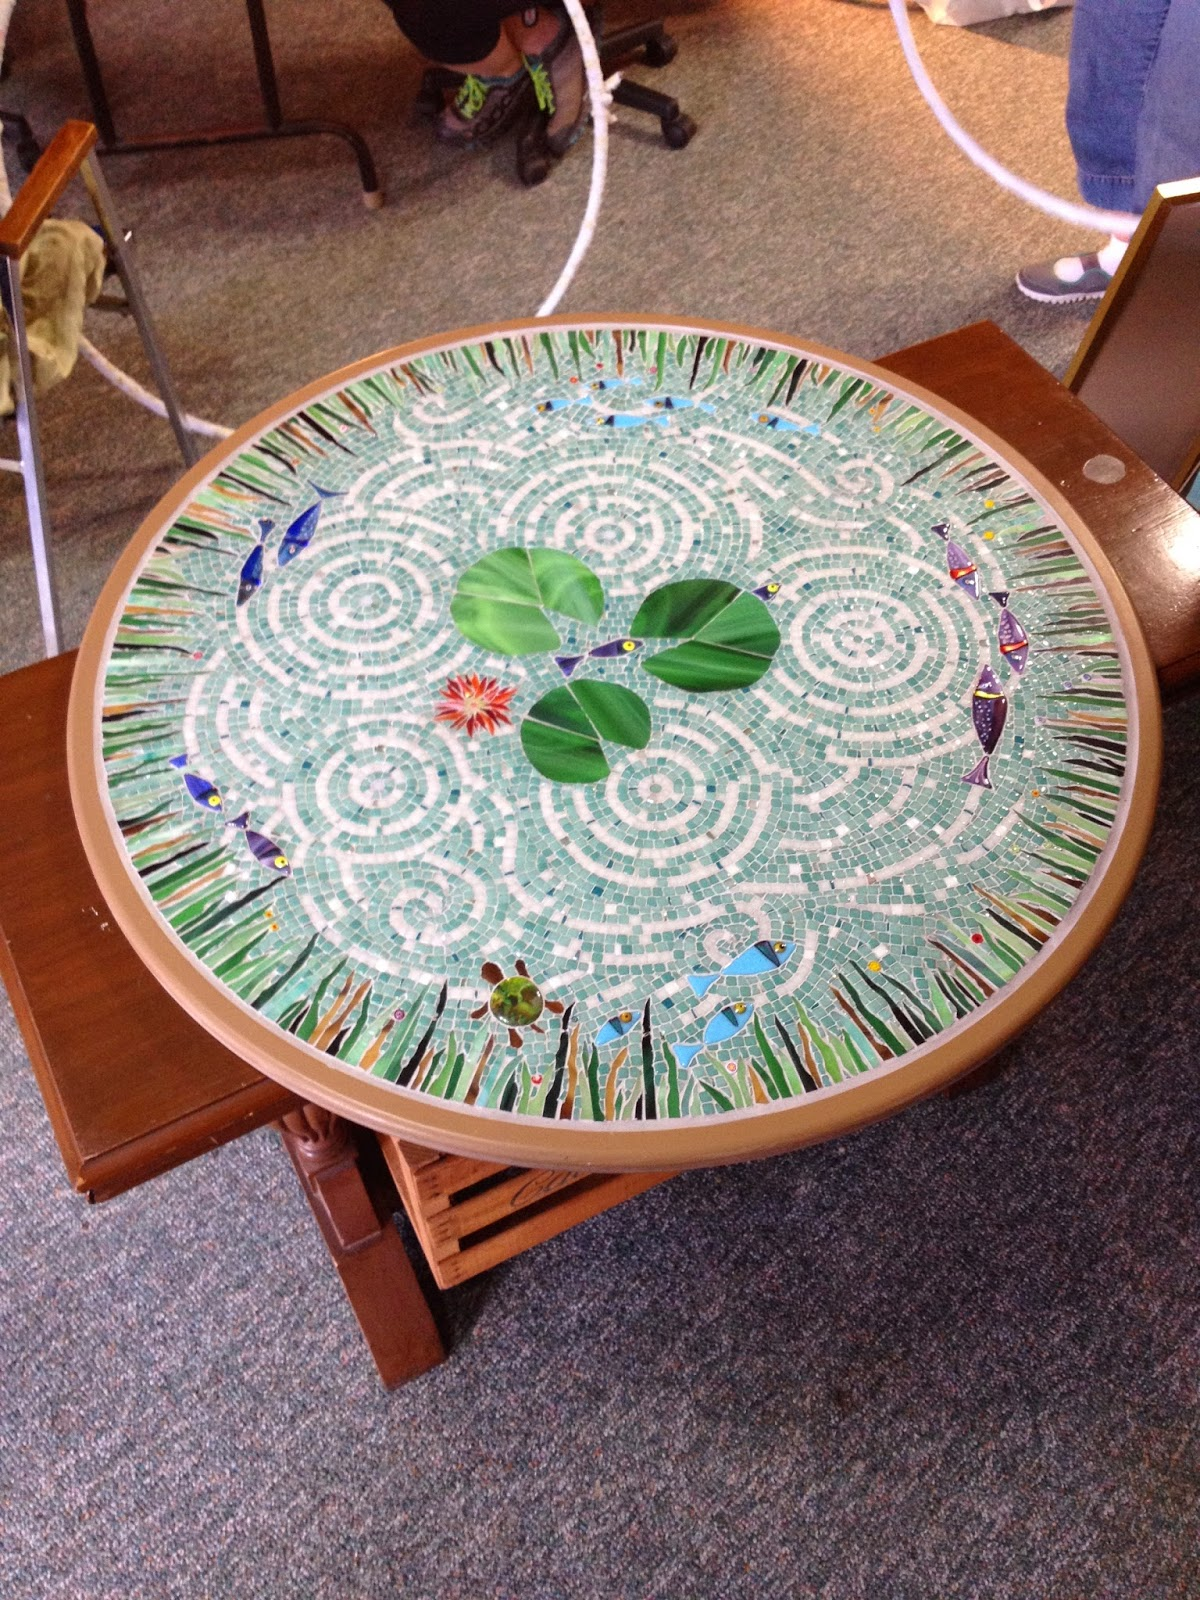 A work of art studio upcoming classes at a work of art studio for Koi pool table